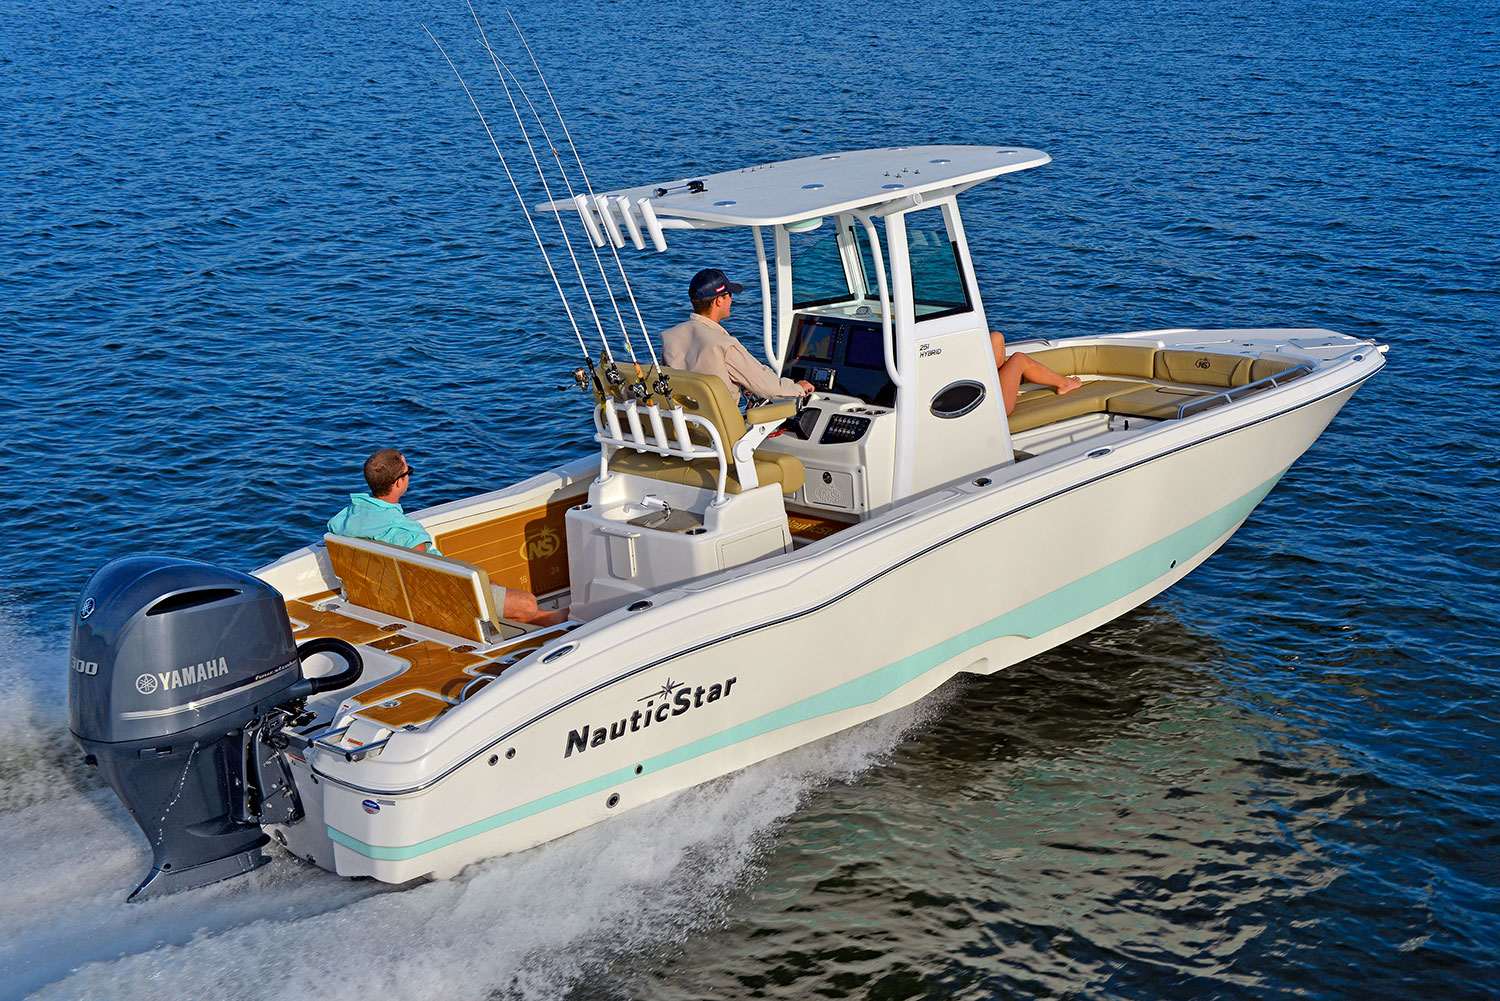 A man captaining the NauticStar 251 Hybrid with one man looking on the water